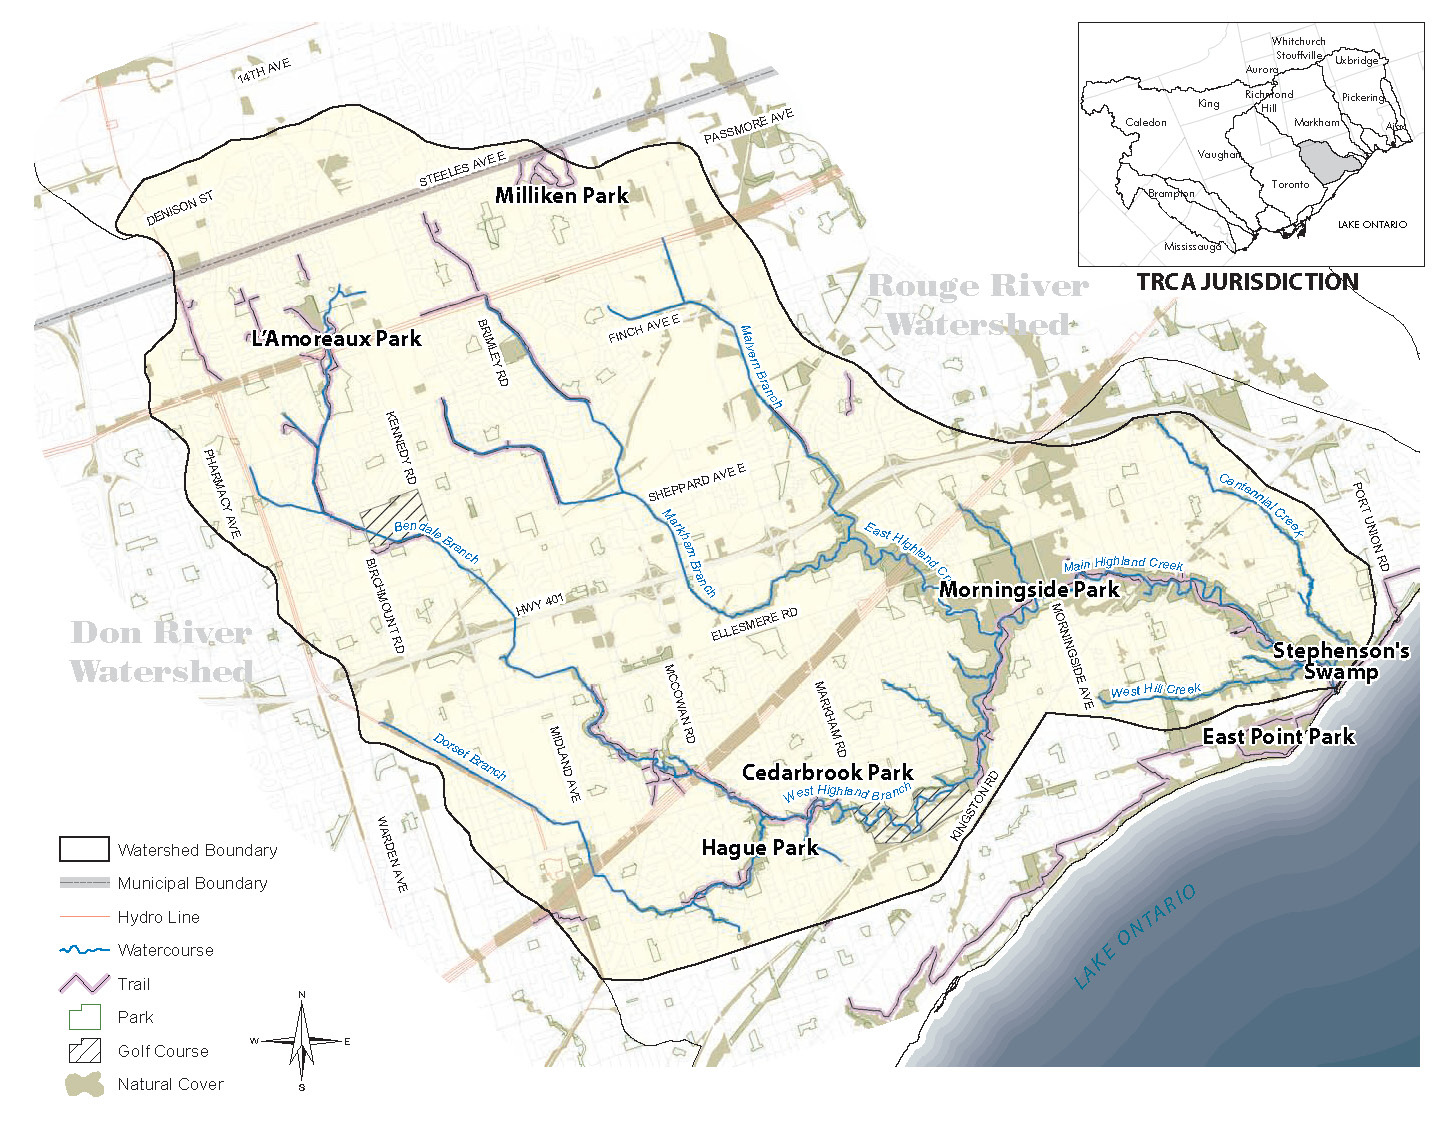 Places of interest within the Highland Creek Watershed